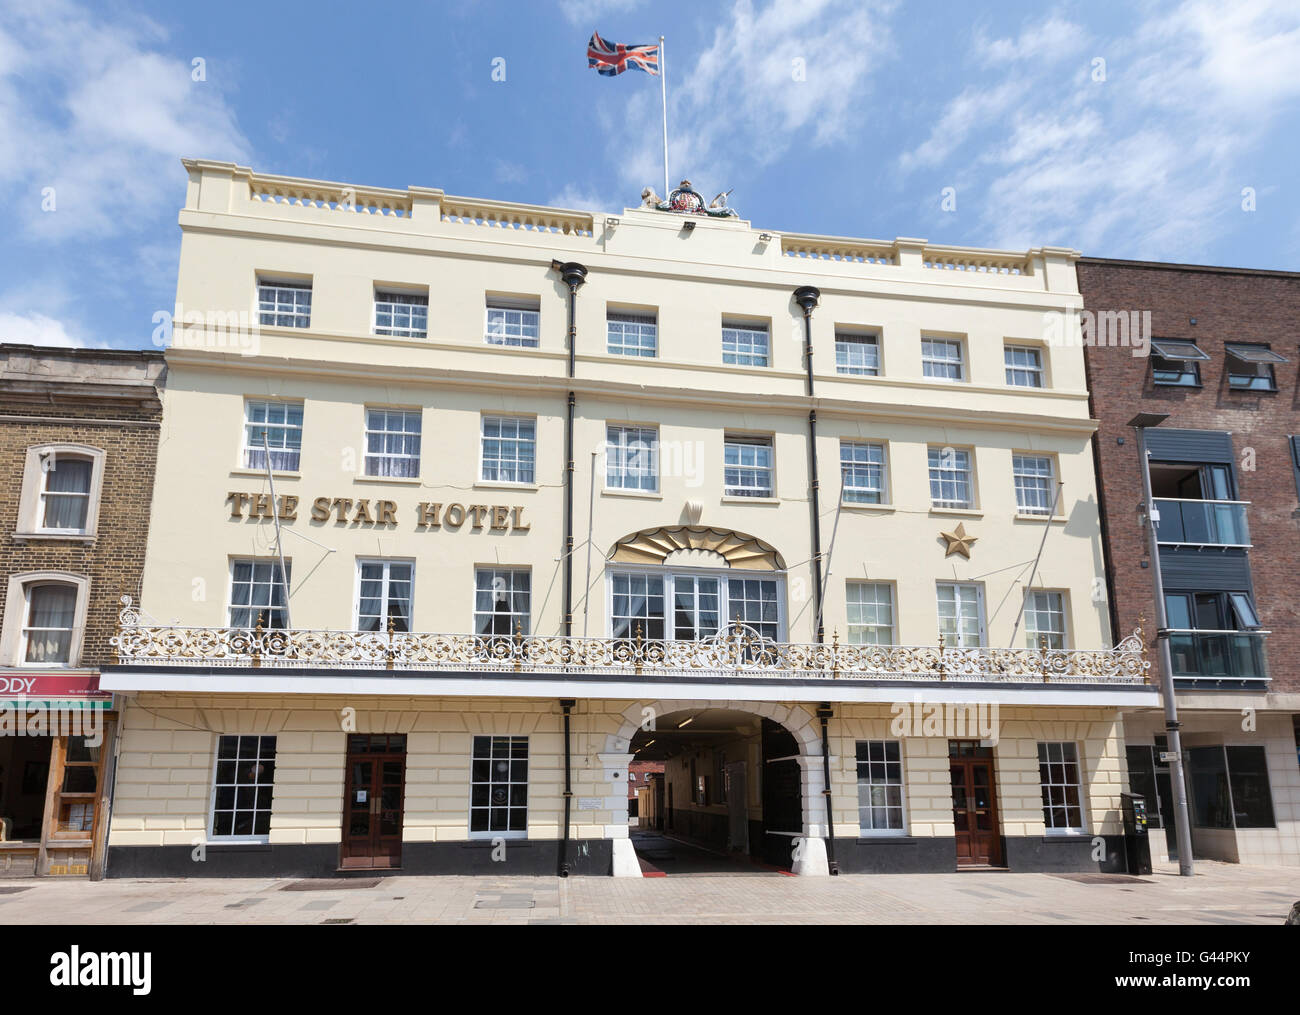 Das Star Hotel in Southampton, Hampshire, UK Stockbild